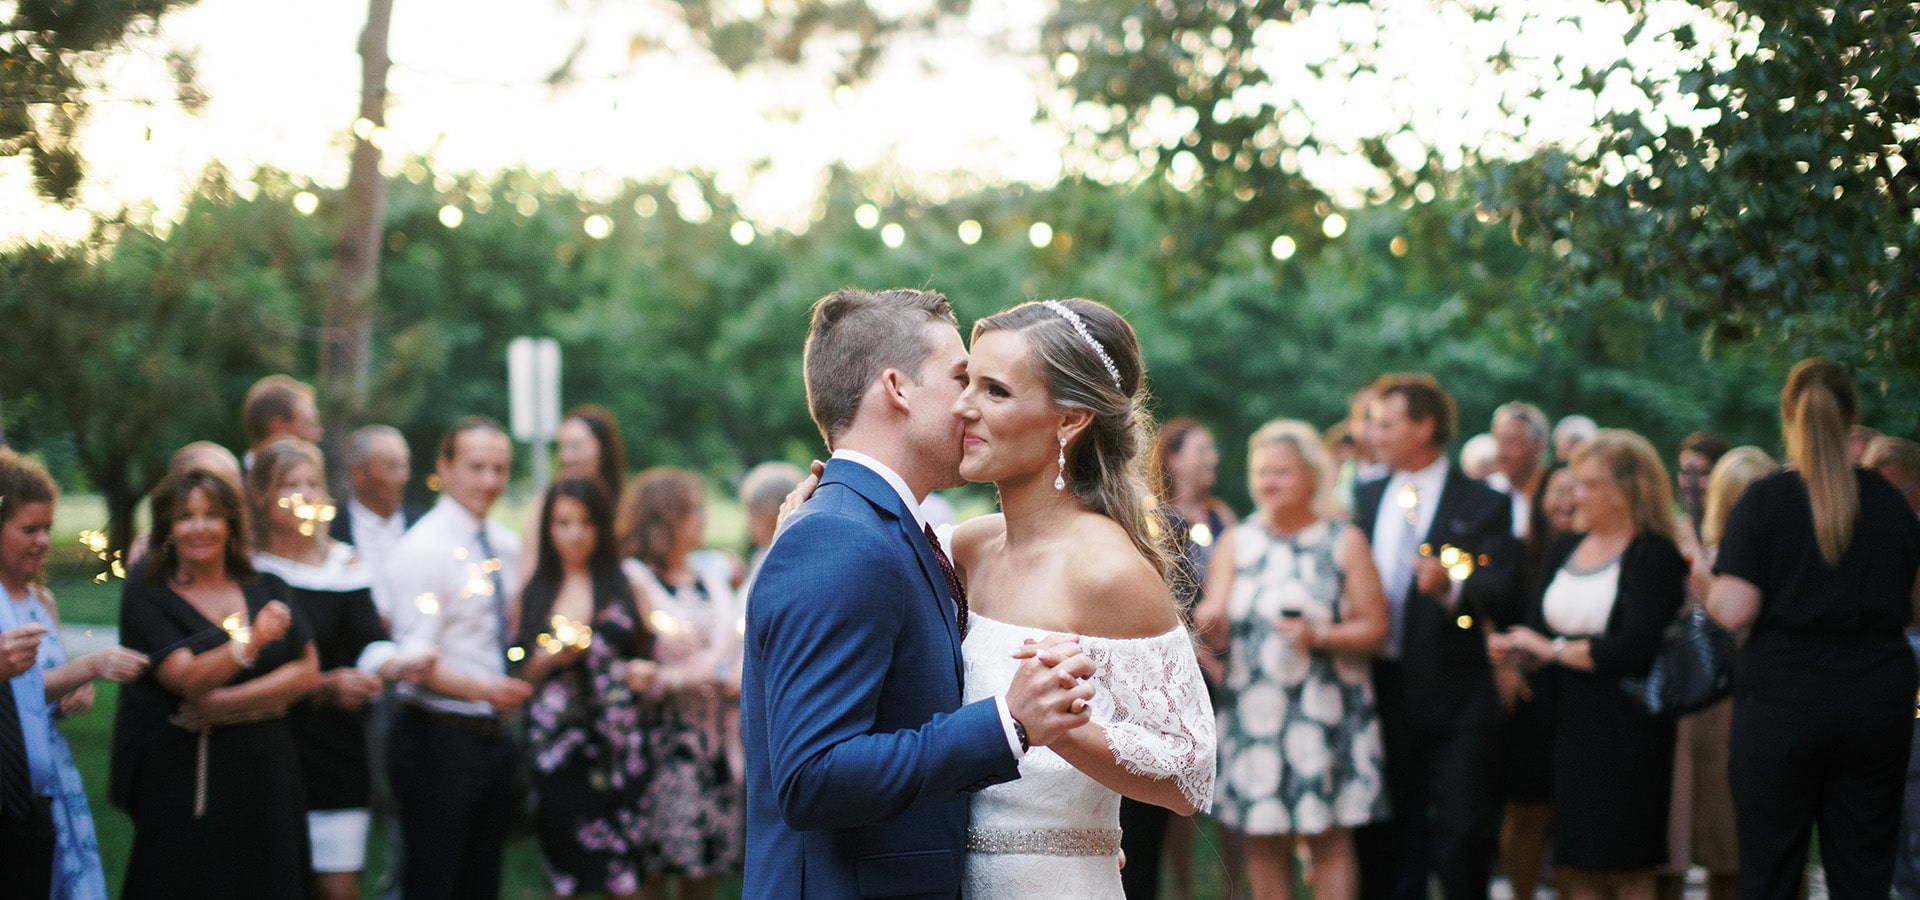 Hero image for Rebecca and Daniel's Lovely Wedding at Kurtz Orchards